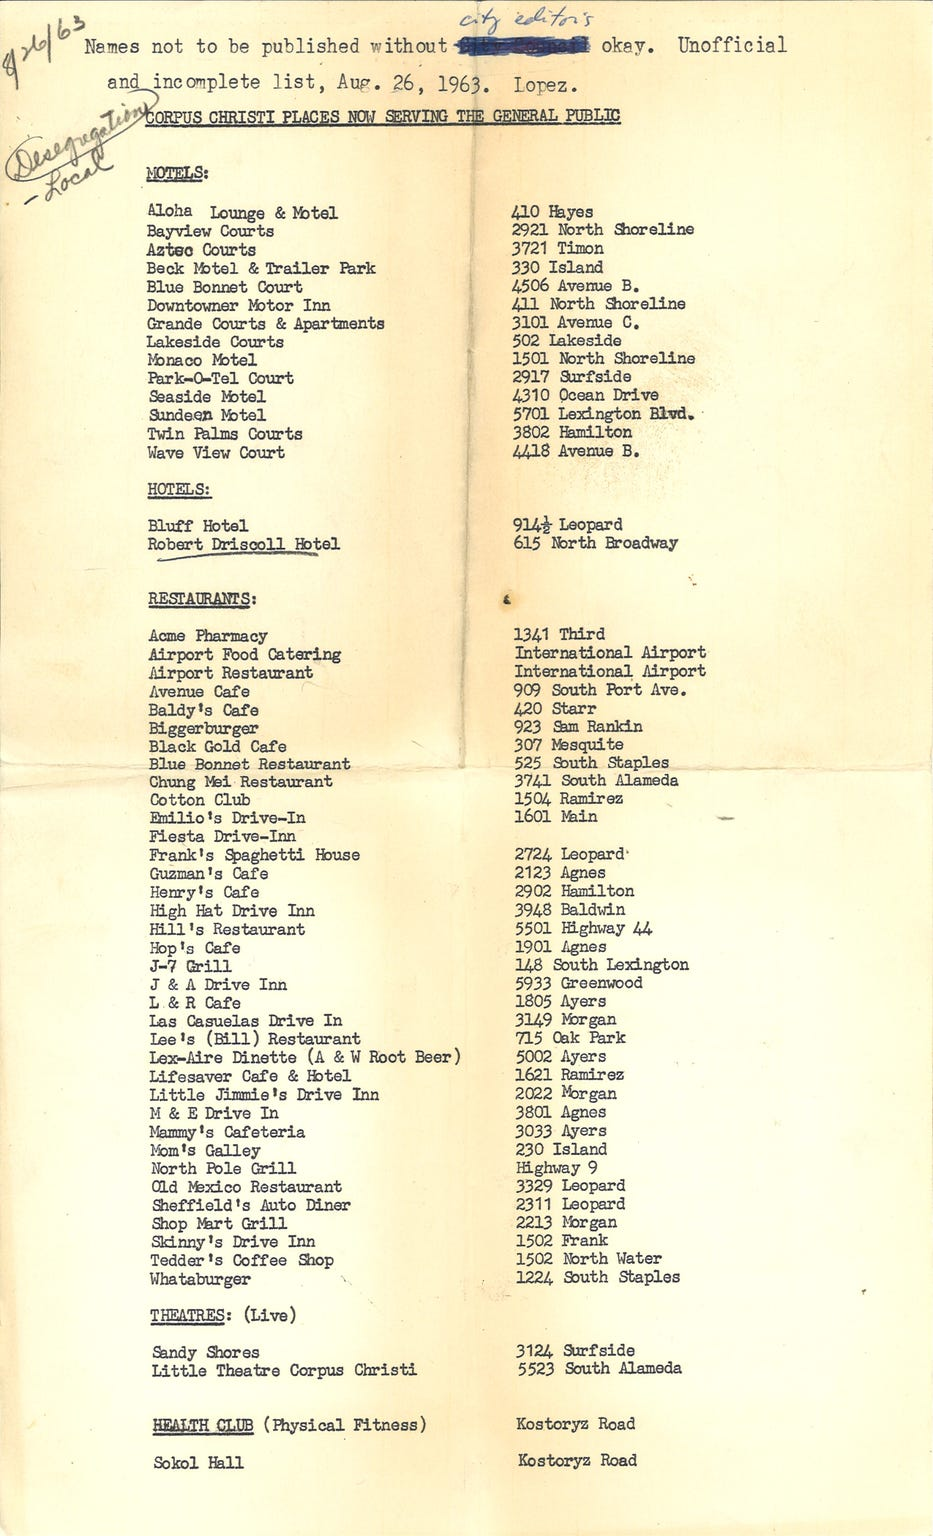 This 1963 list shows the names of desegregated businesses in Corpus Christi.